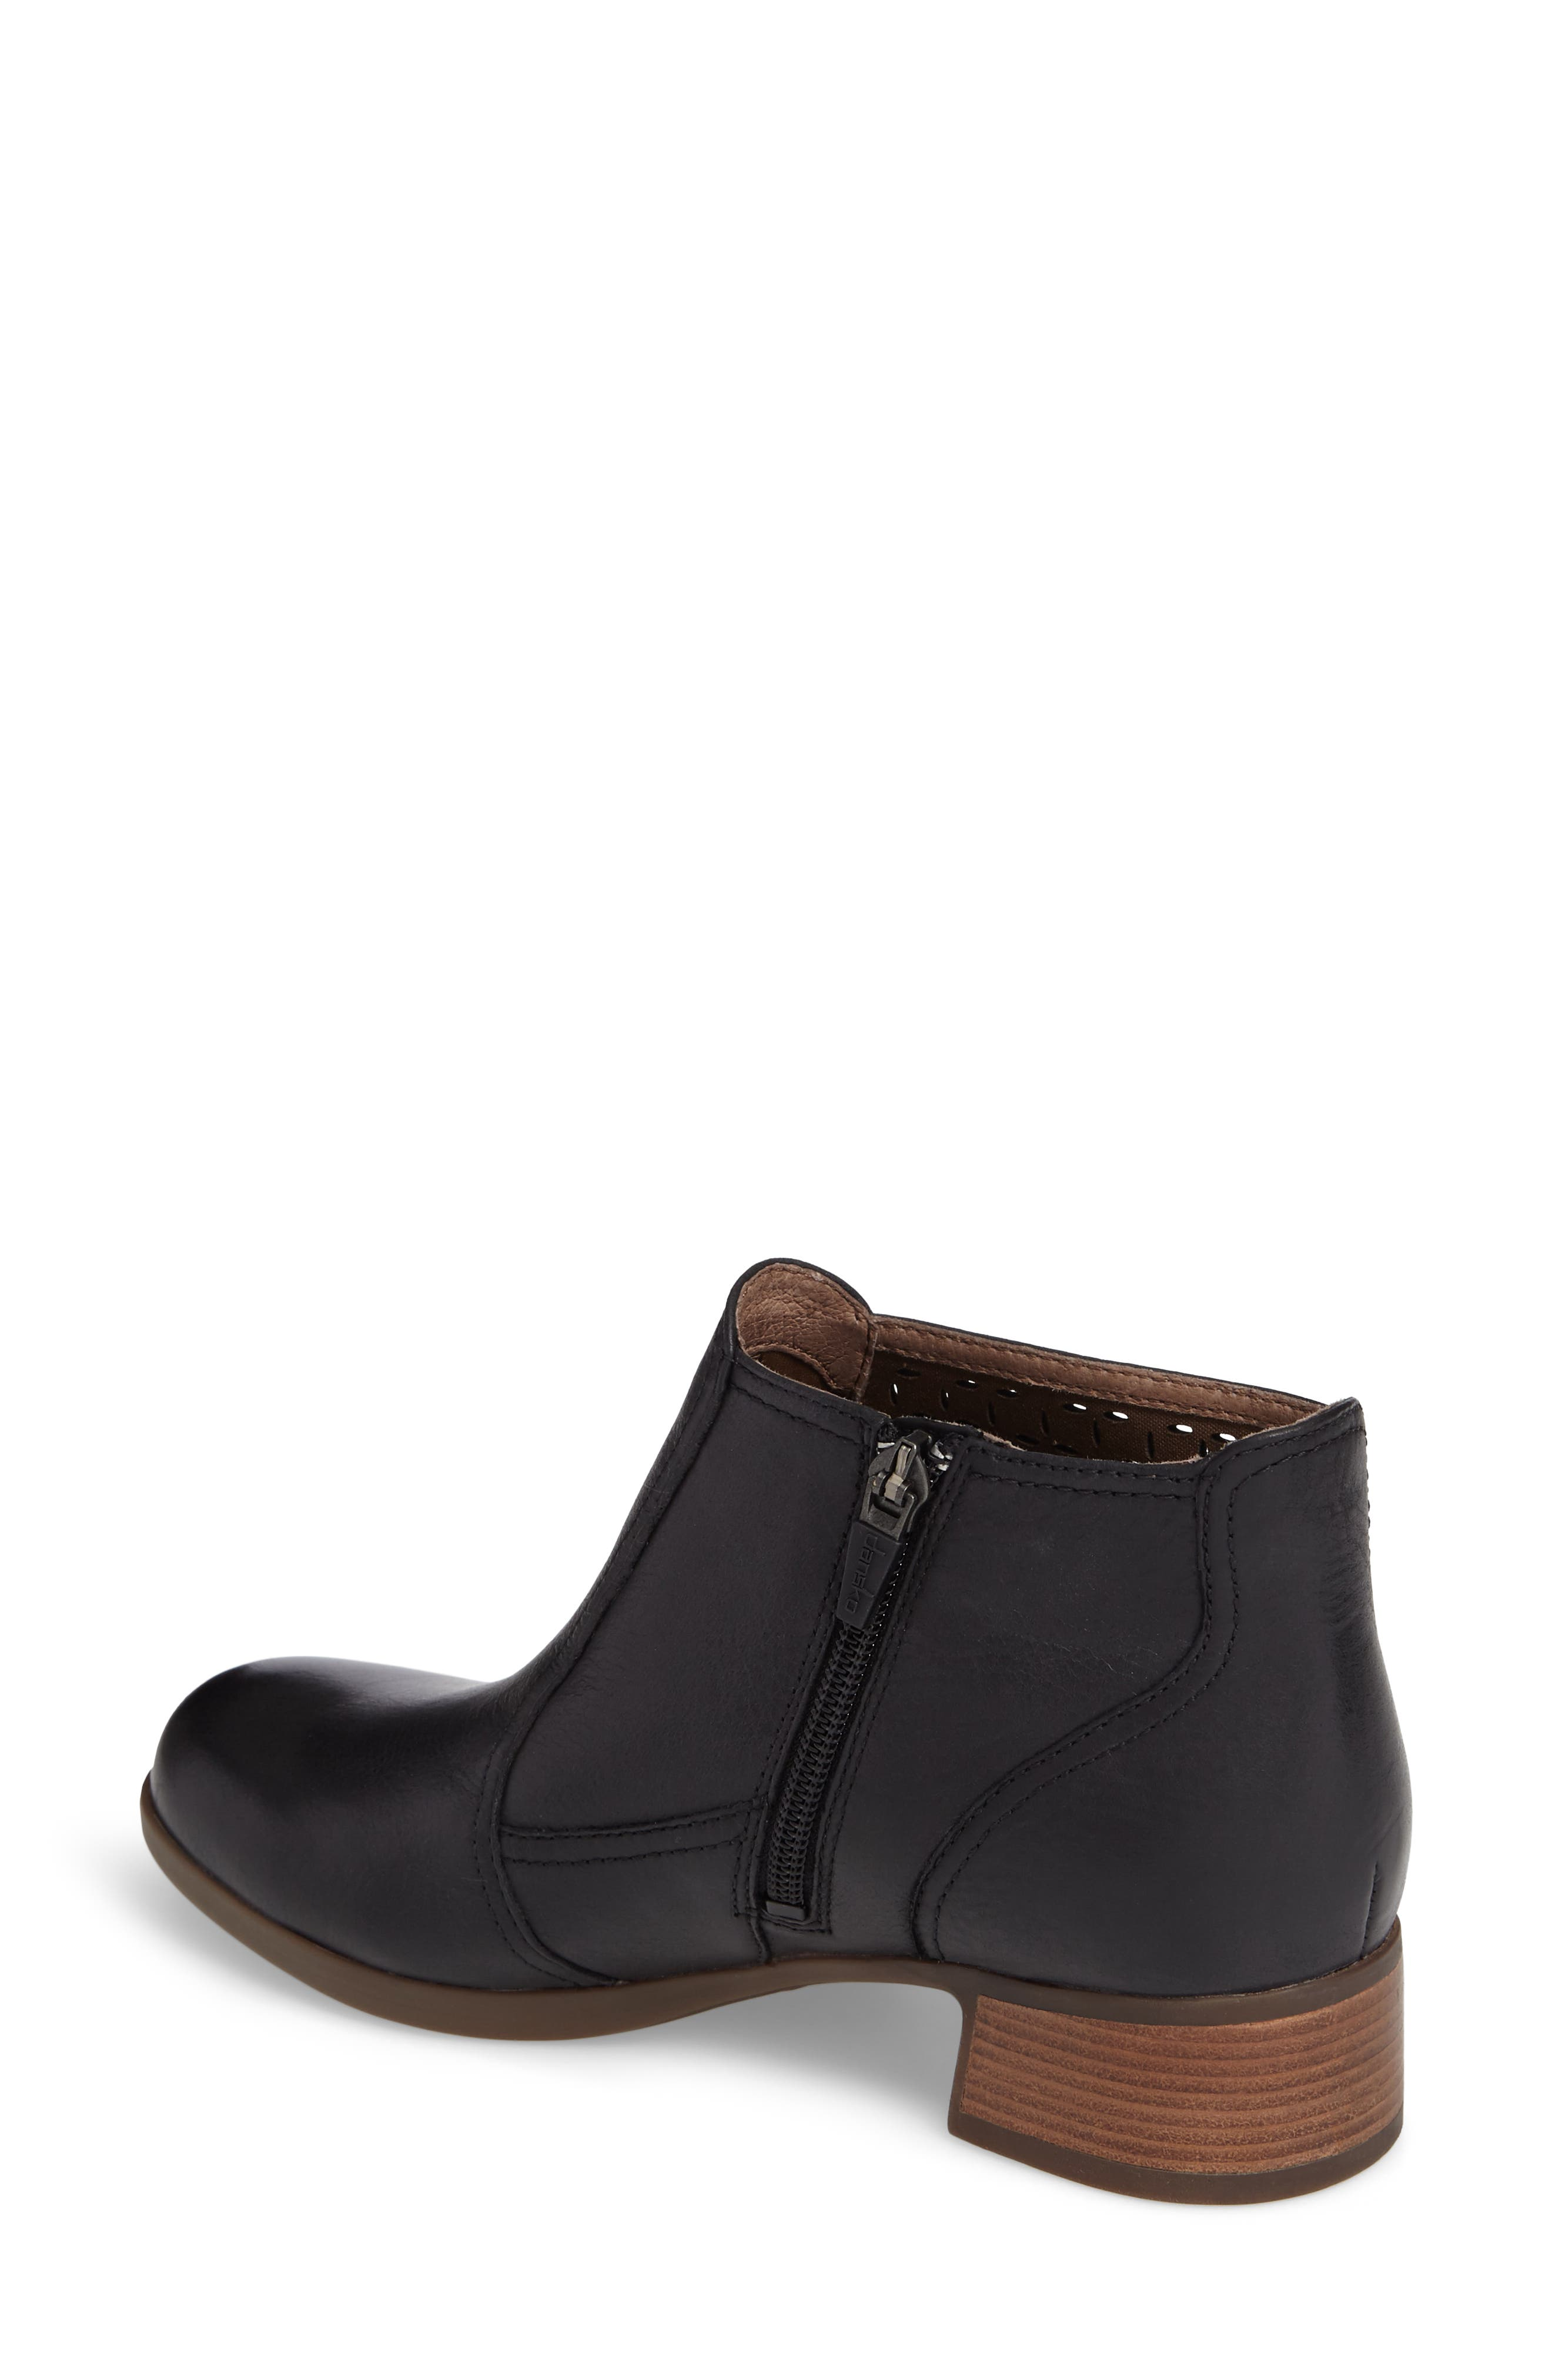 Liberty Laser Cut Bootie,                             Alternate thumbnail 2, color,                             Black Burnished Nappa Leather